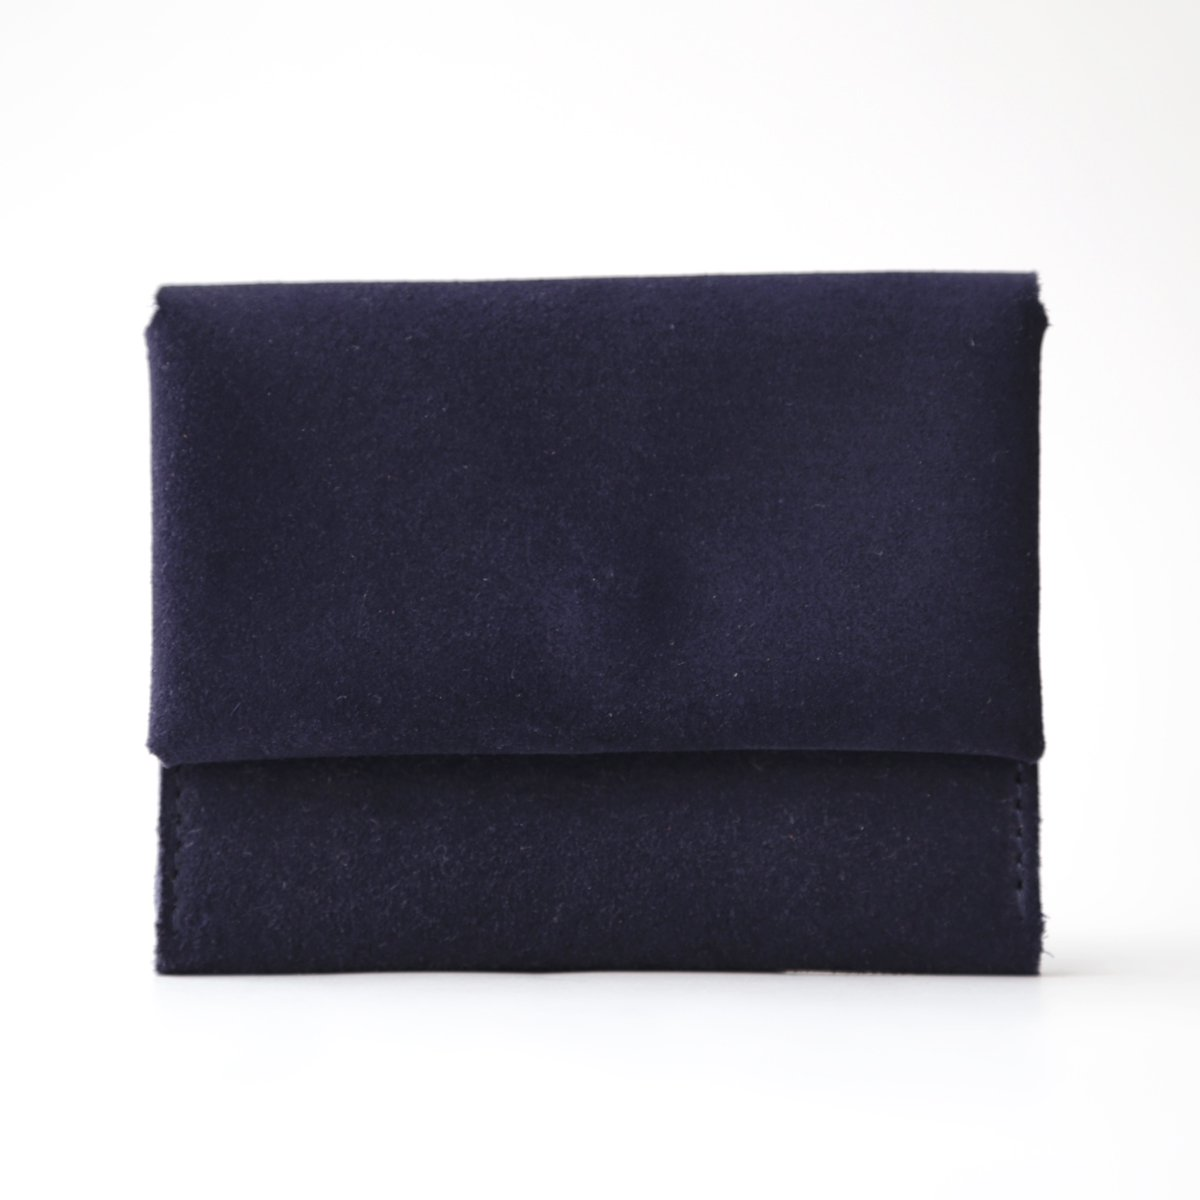 EEL Products × Tochca Coin Purse Super Back  Navy